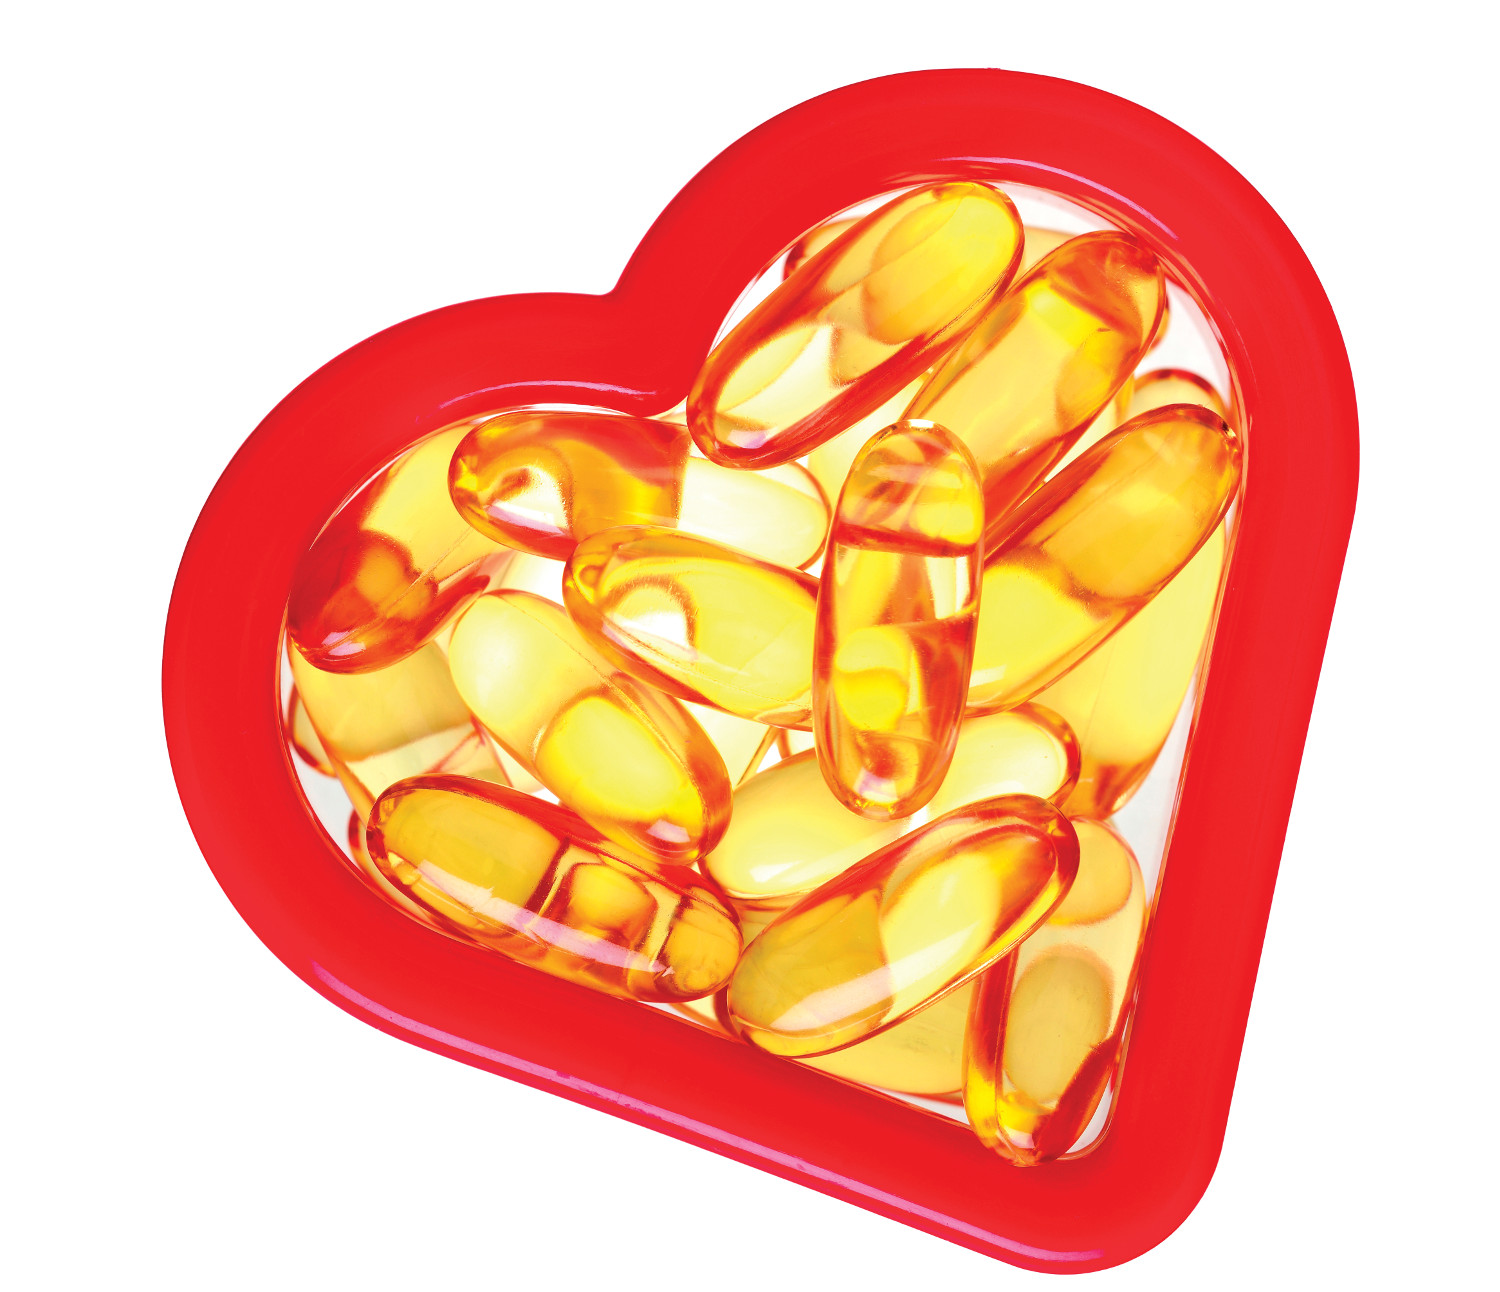 heart and omega-3 supplements